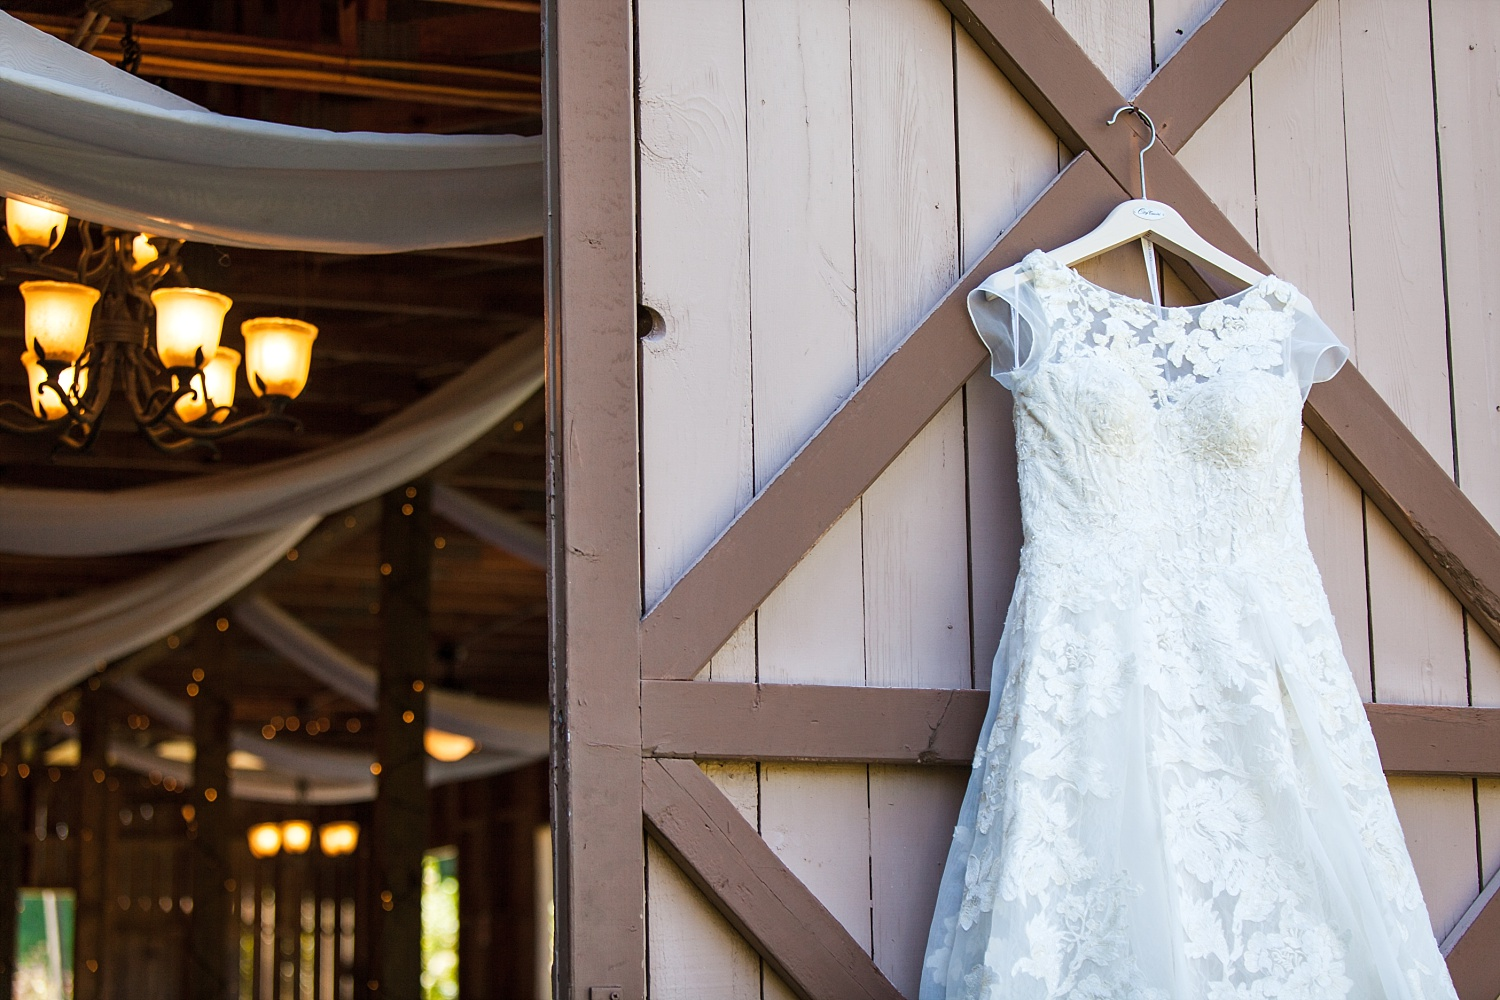 lace wedding dress hanging from barn door at The Fields of Blackberry Cove